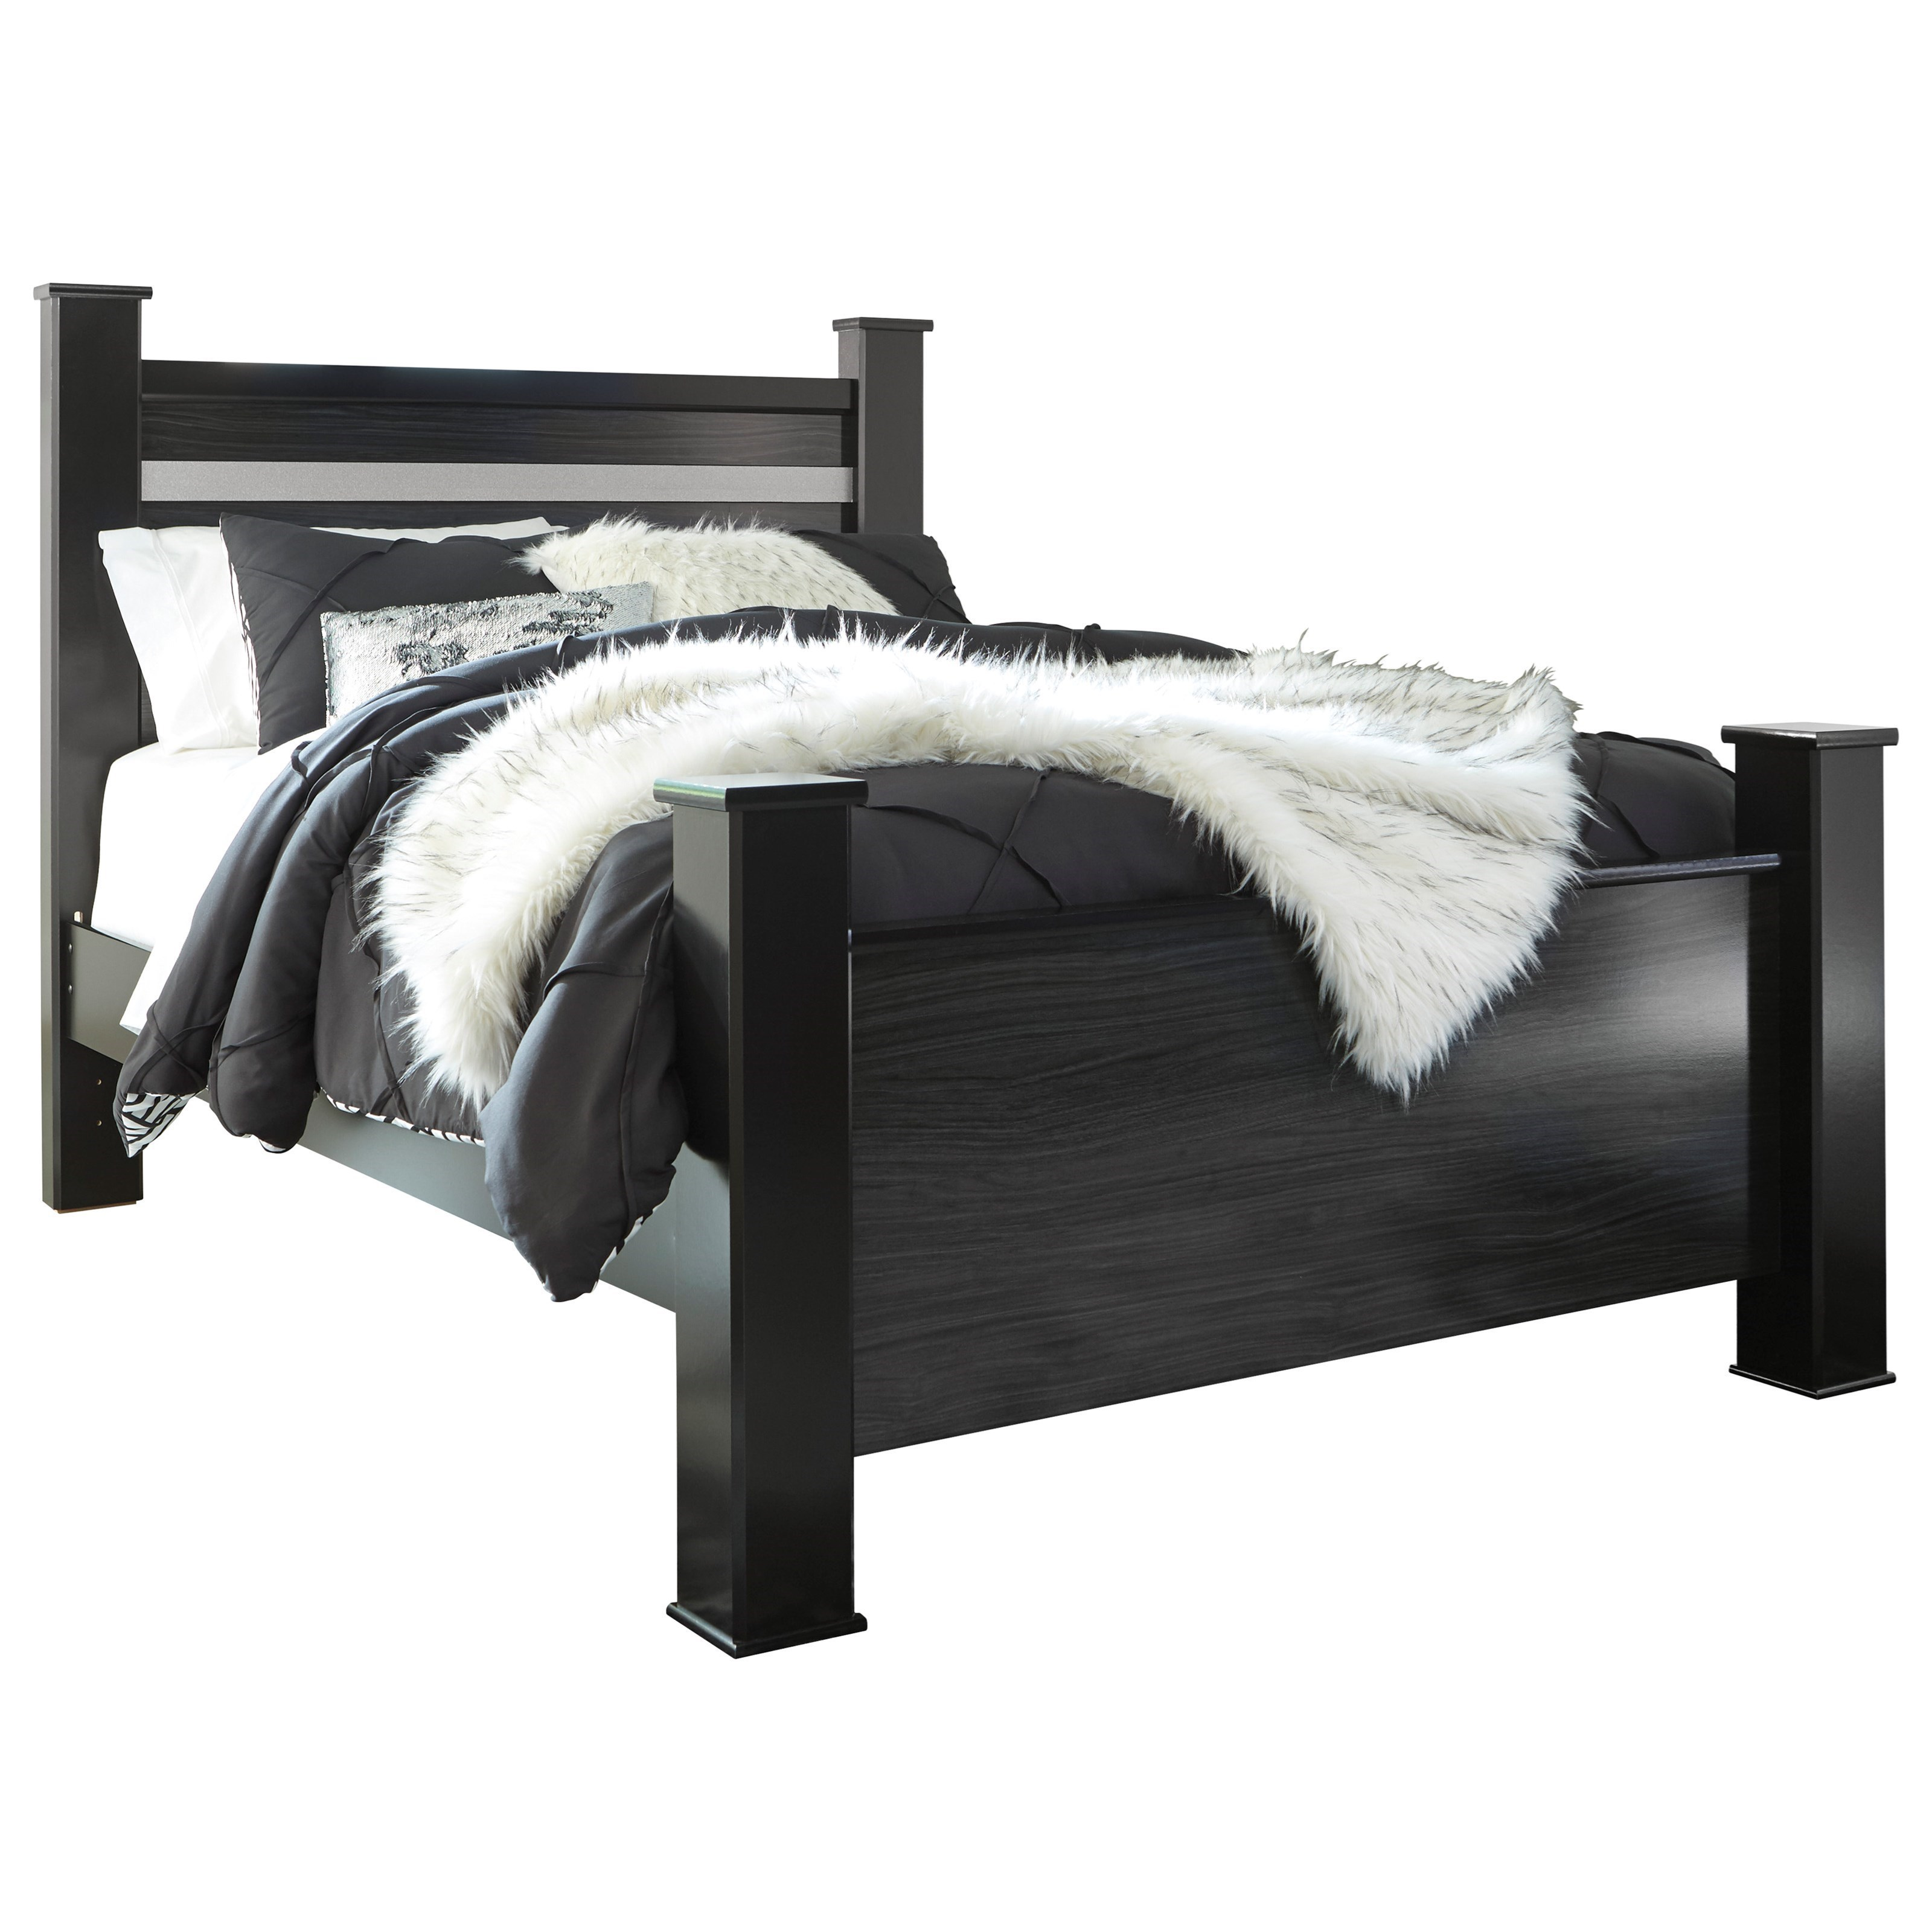 Signature Design By Ashley Starberry Black Finish Queen Poster Bed With Glitter Accent Panel Royal Furniture Panel Beds